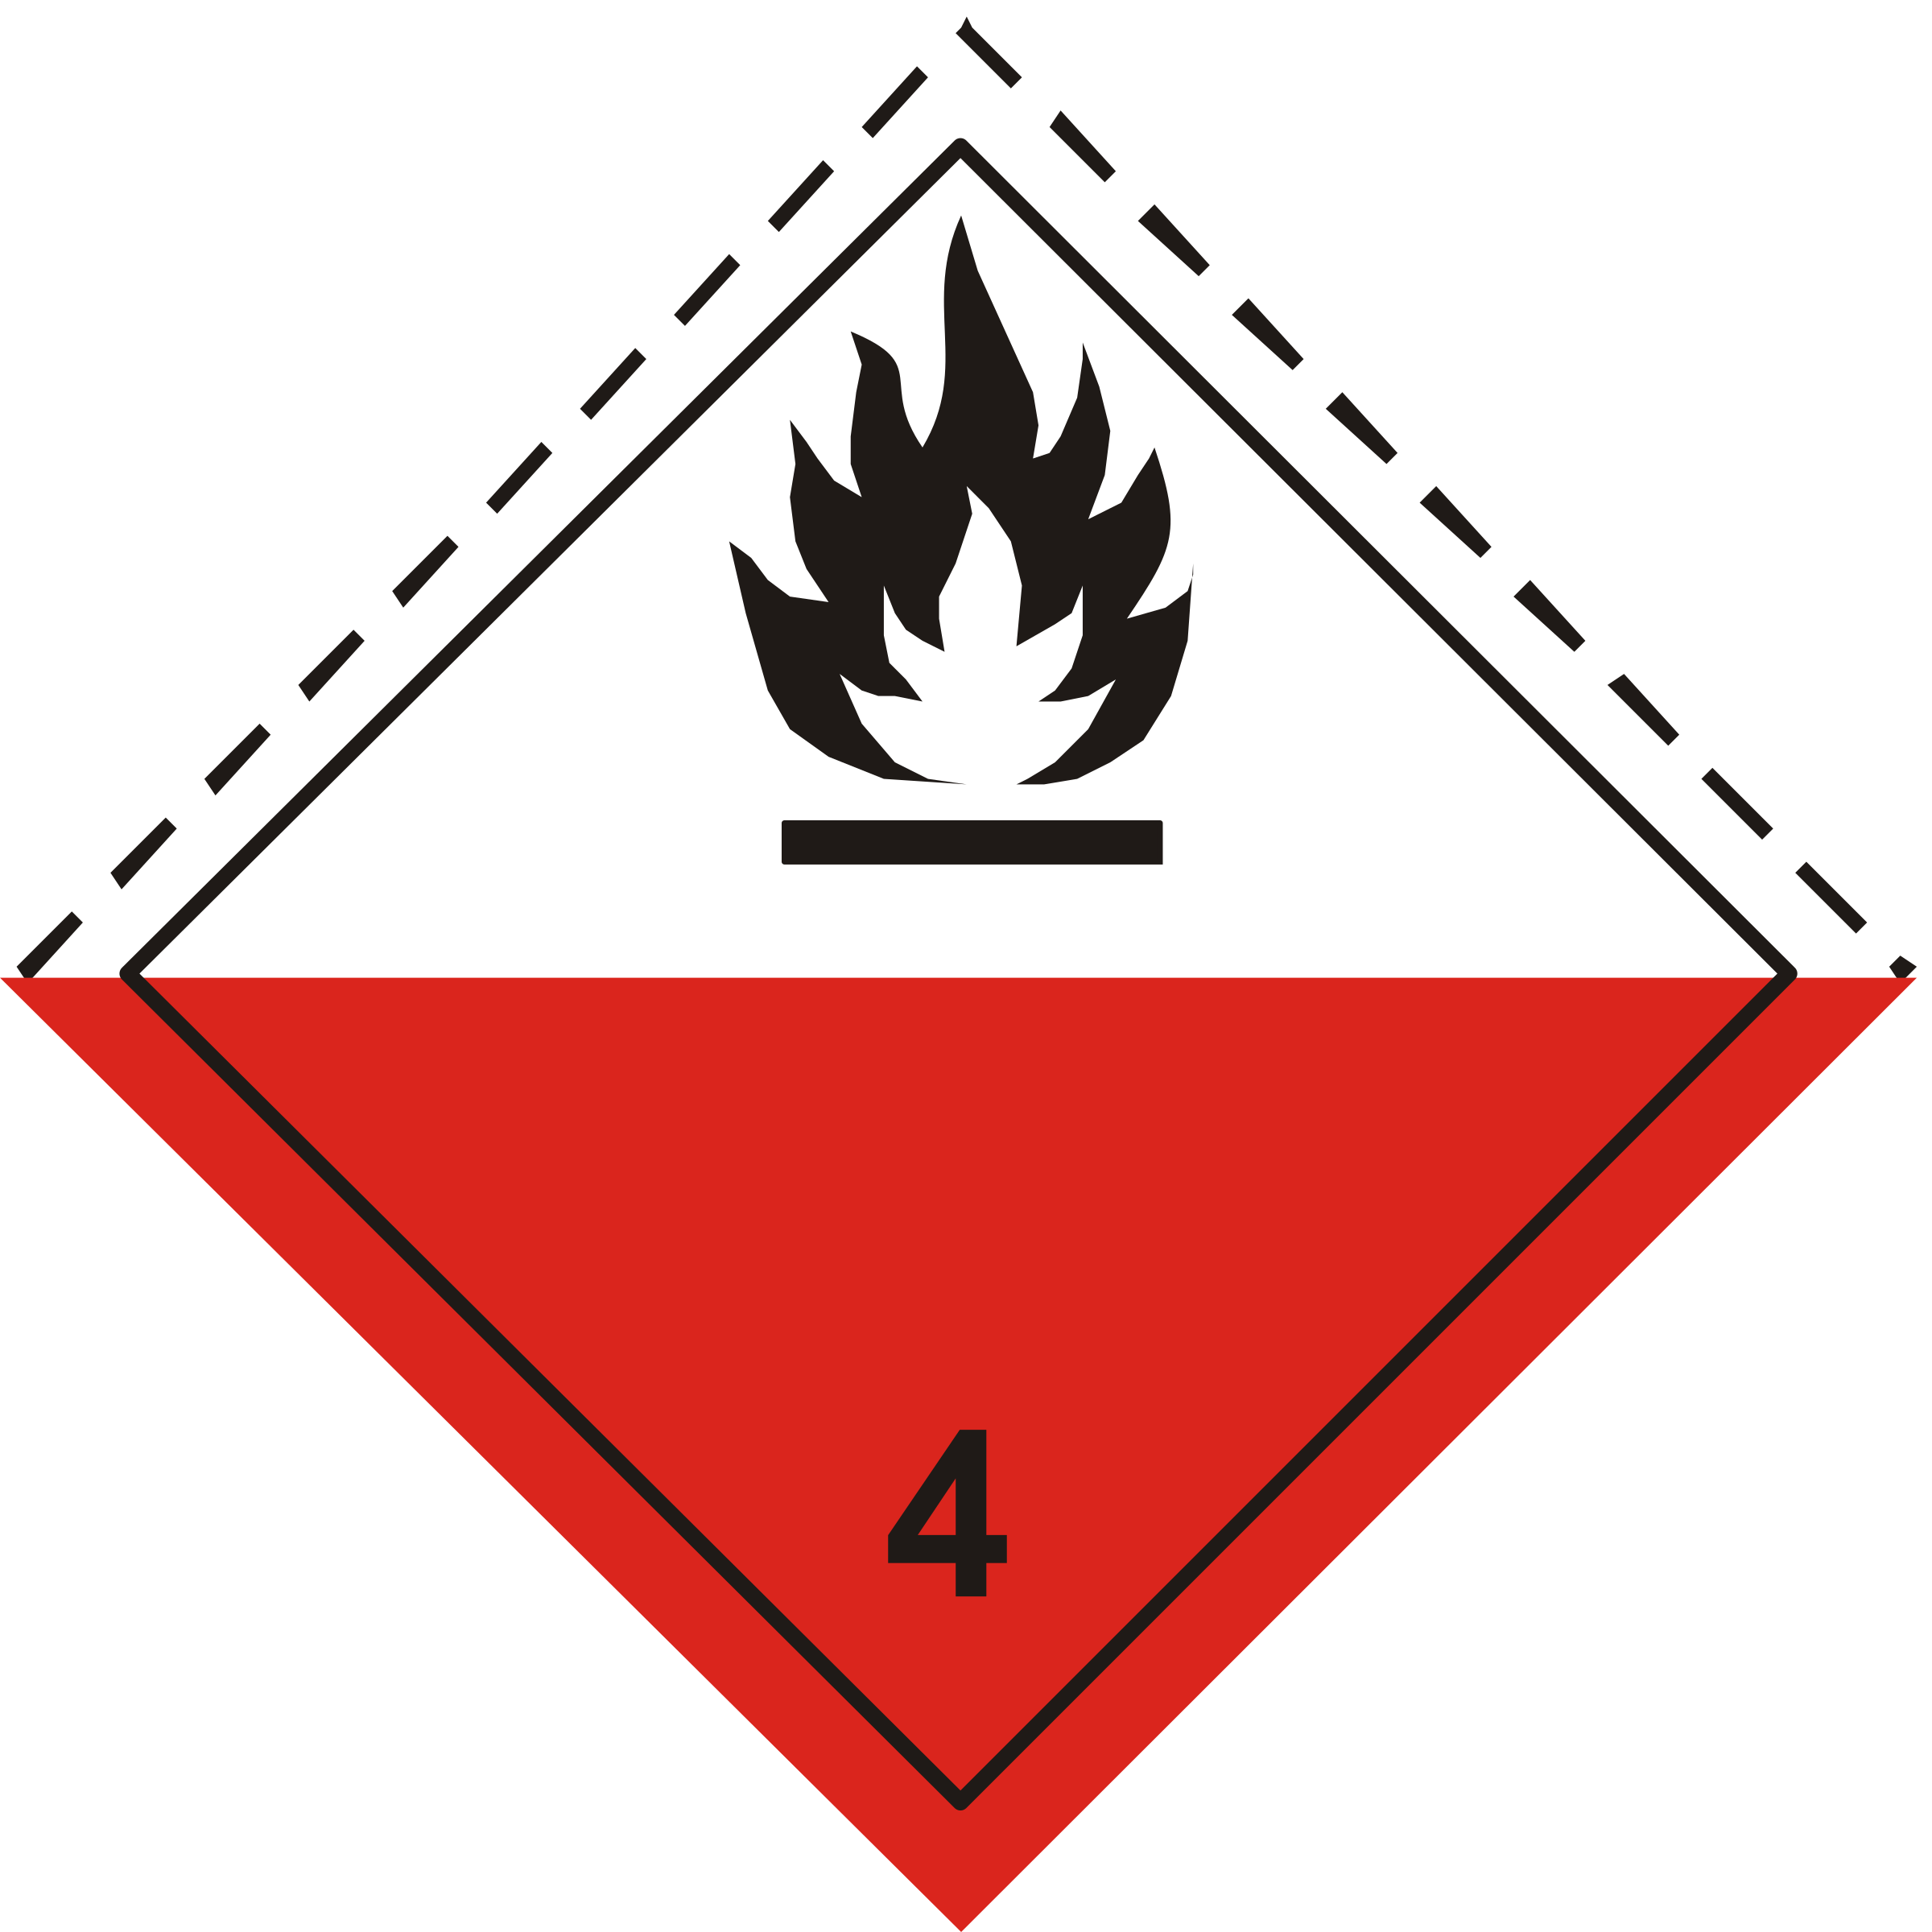 ADR pictogram 4.2-Spontaneously combustibles by Juhele